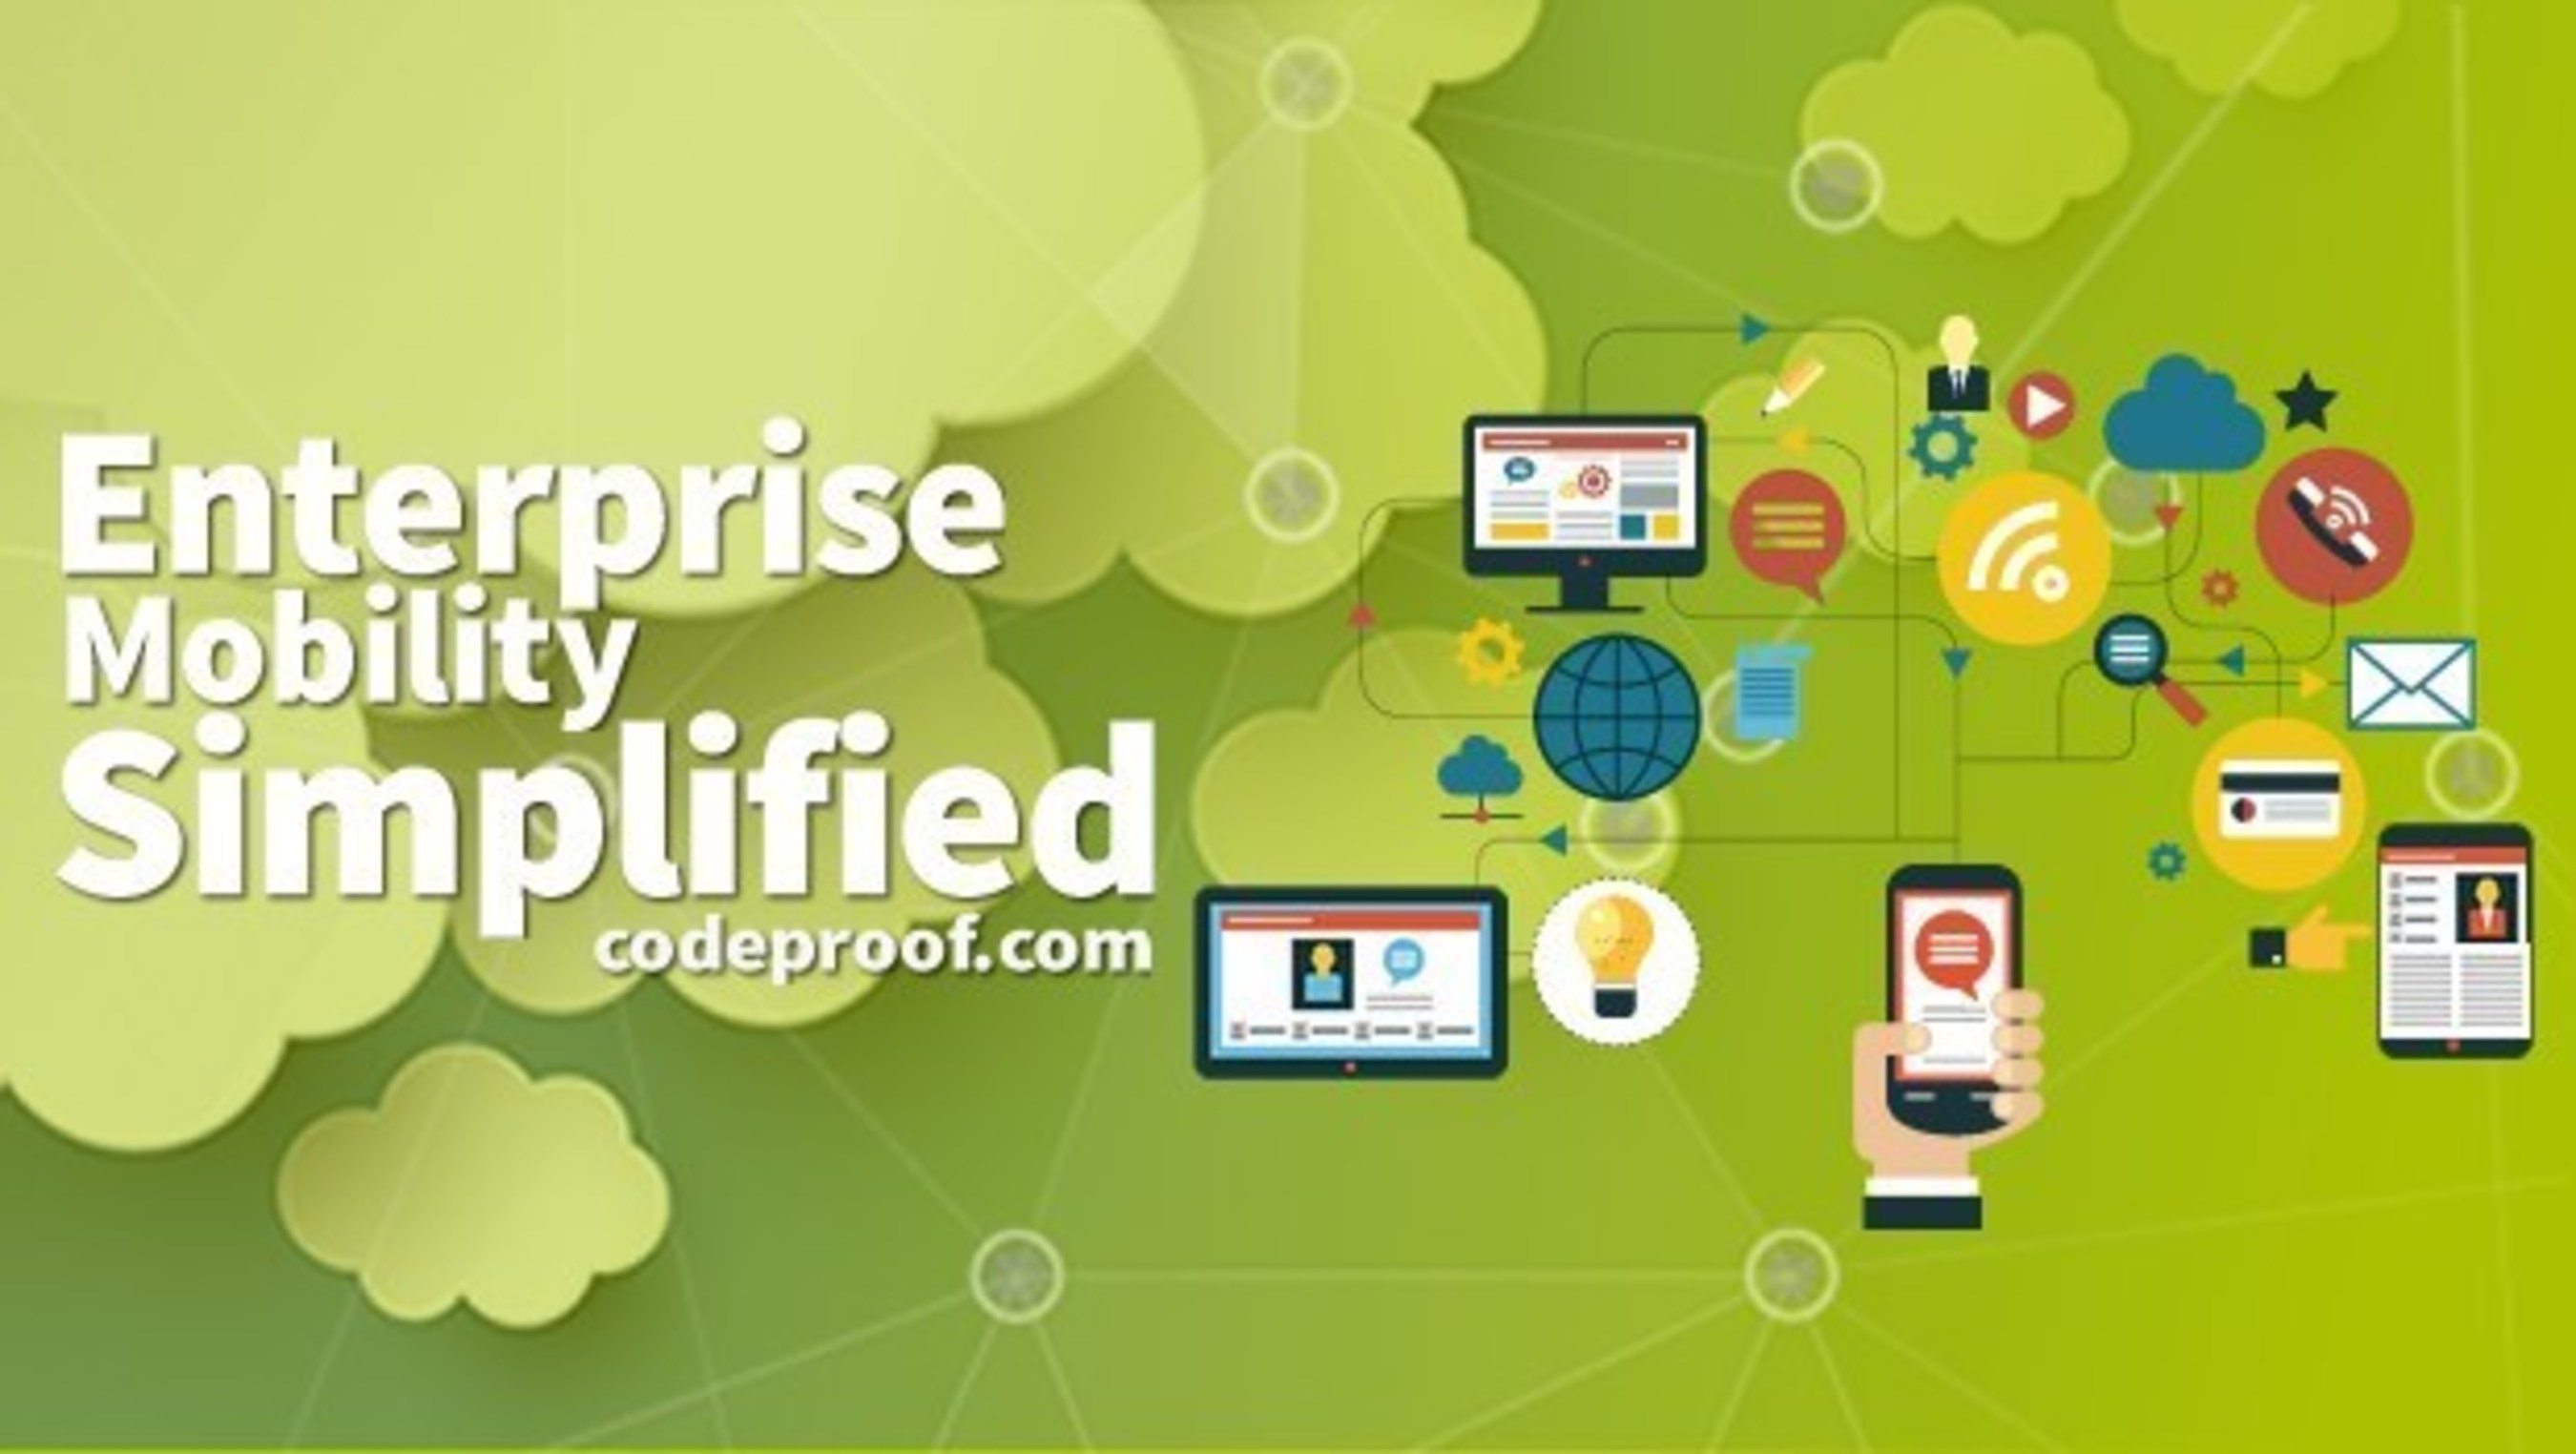 Codeproof Maximizes Mobile Security And Business